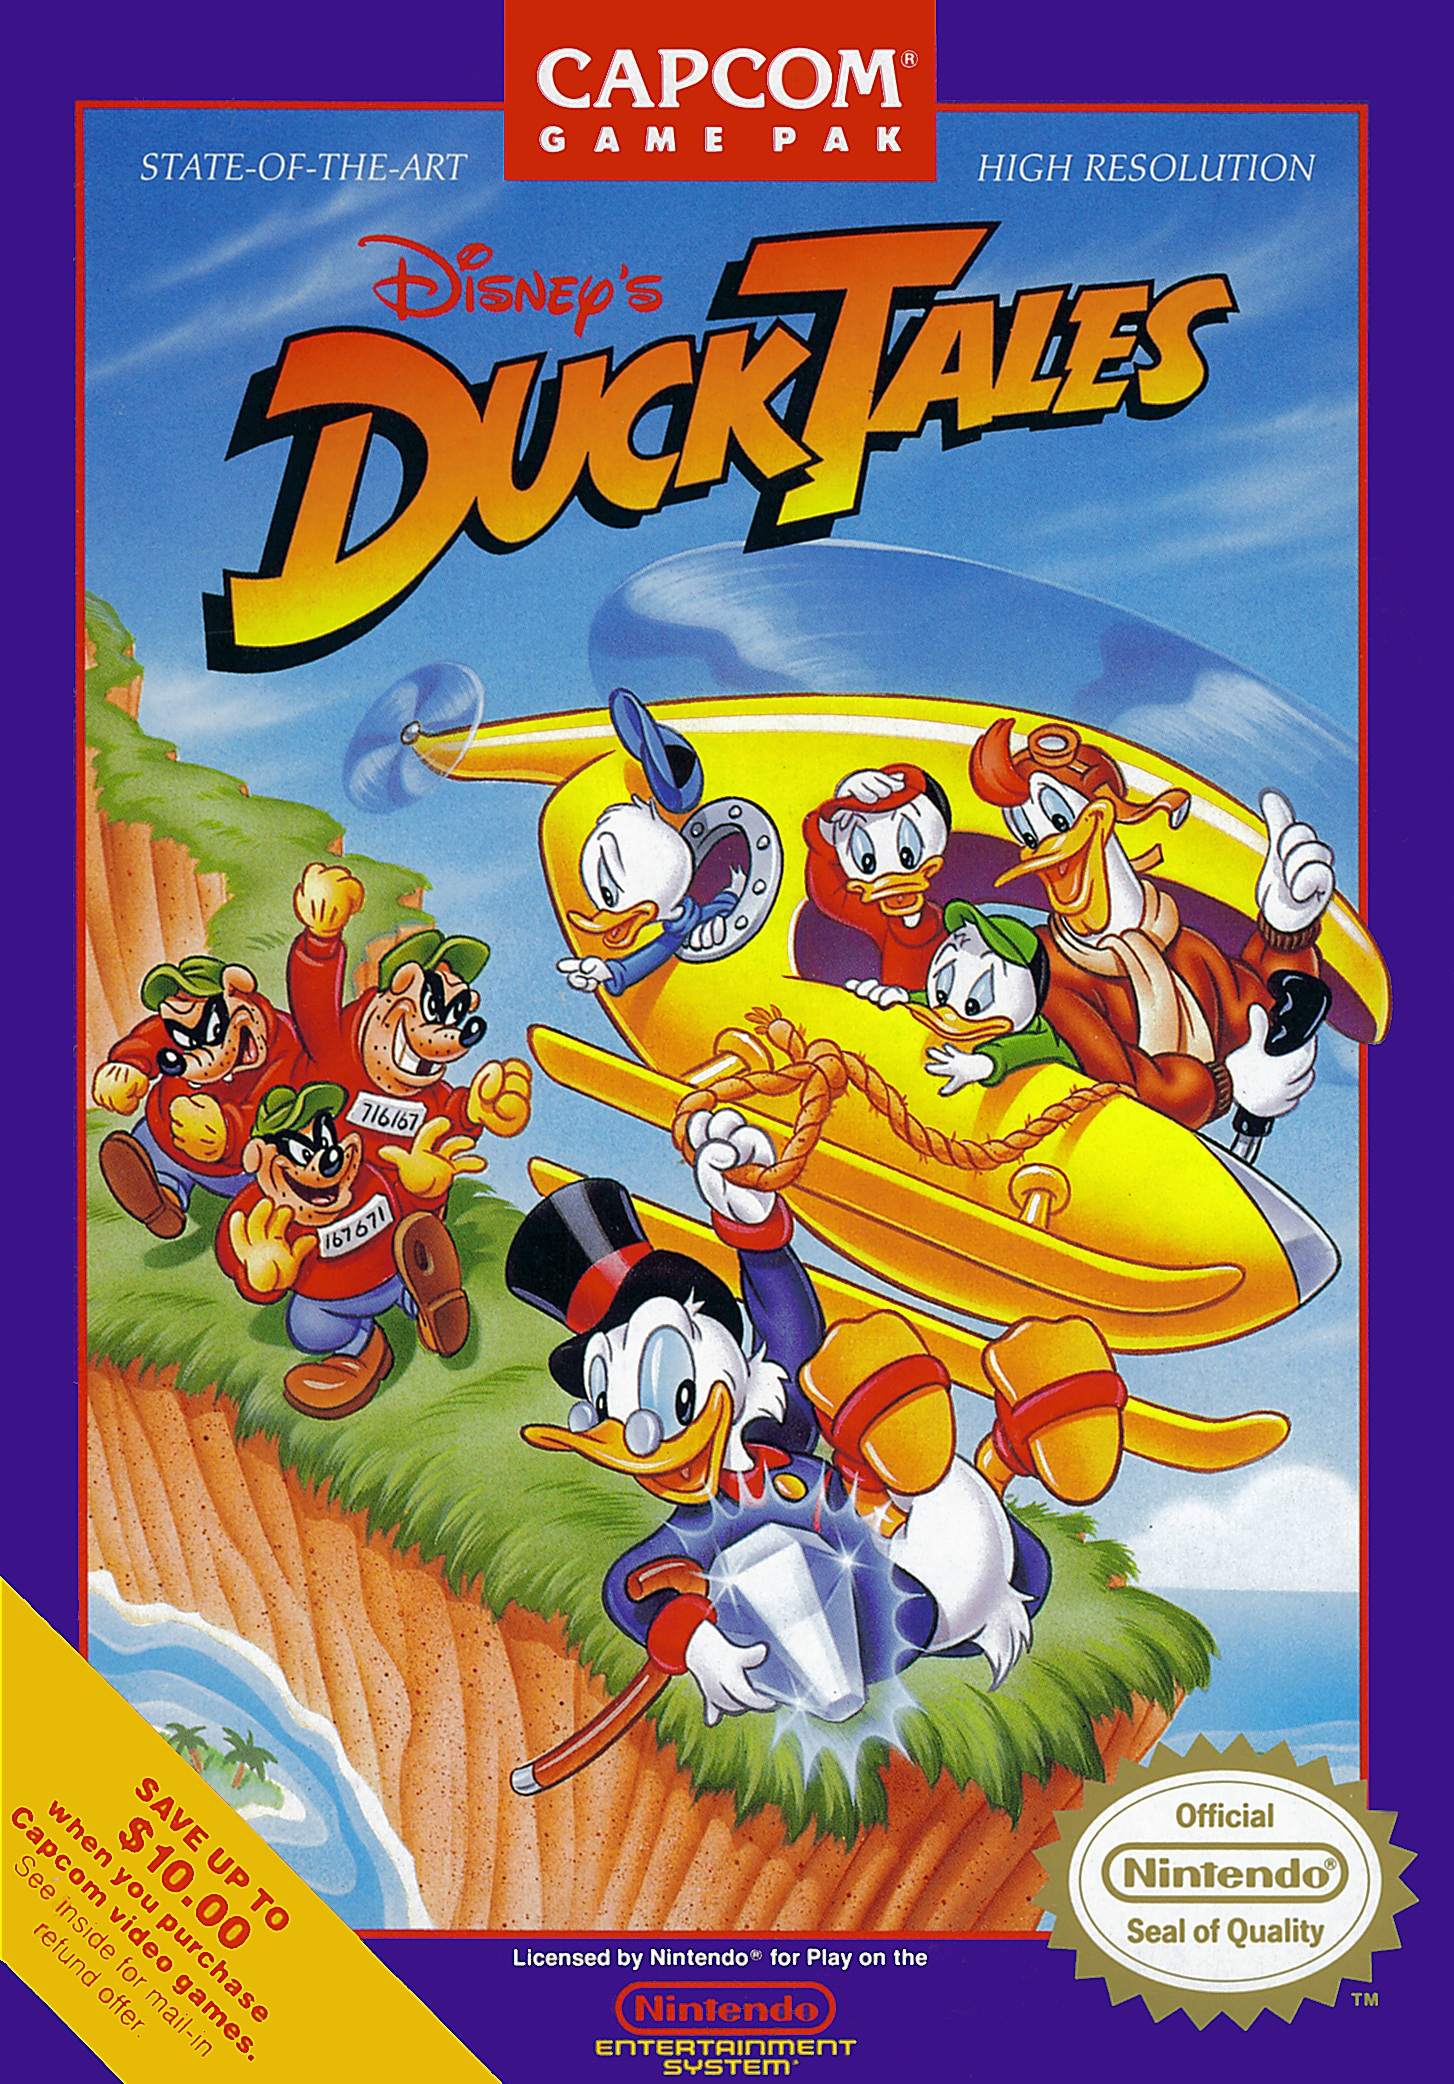 Ducktales Remastered Heads to Video Game Consoles in Summer 2013